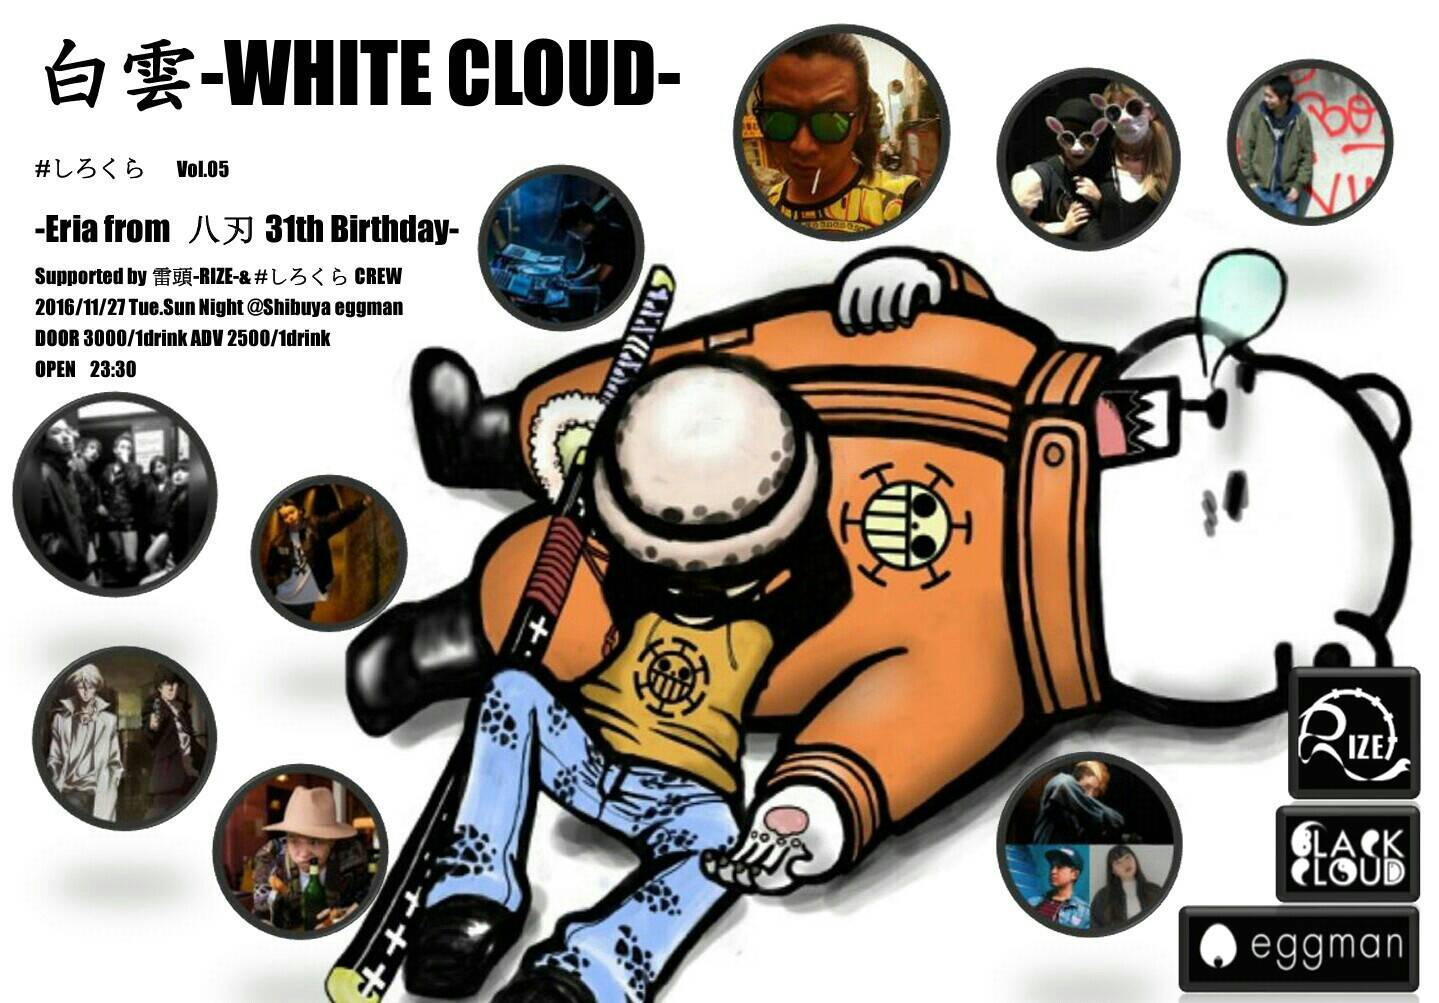 白雲-WHITE CLOUD-<br>#しろくら Vol.05<br>produced by #雷頭-RIZE- &#038; #しろくらCREW